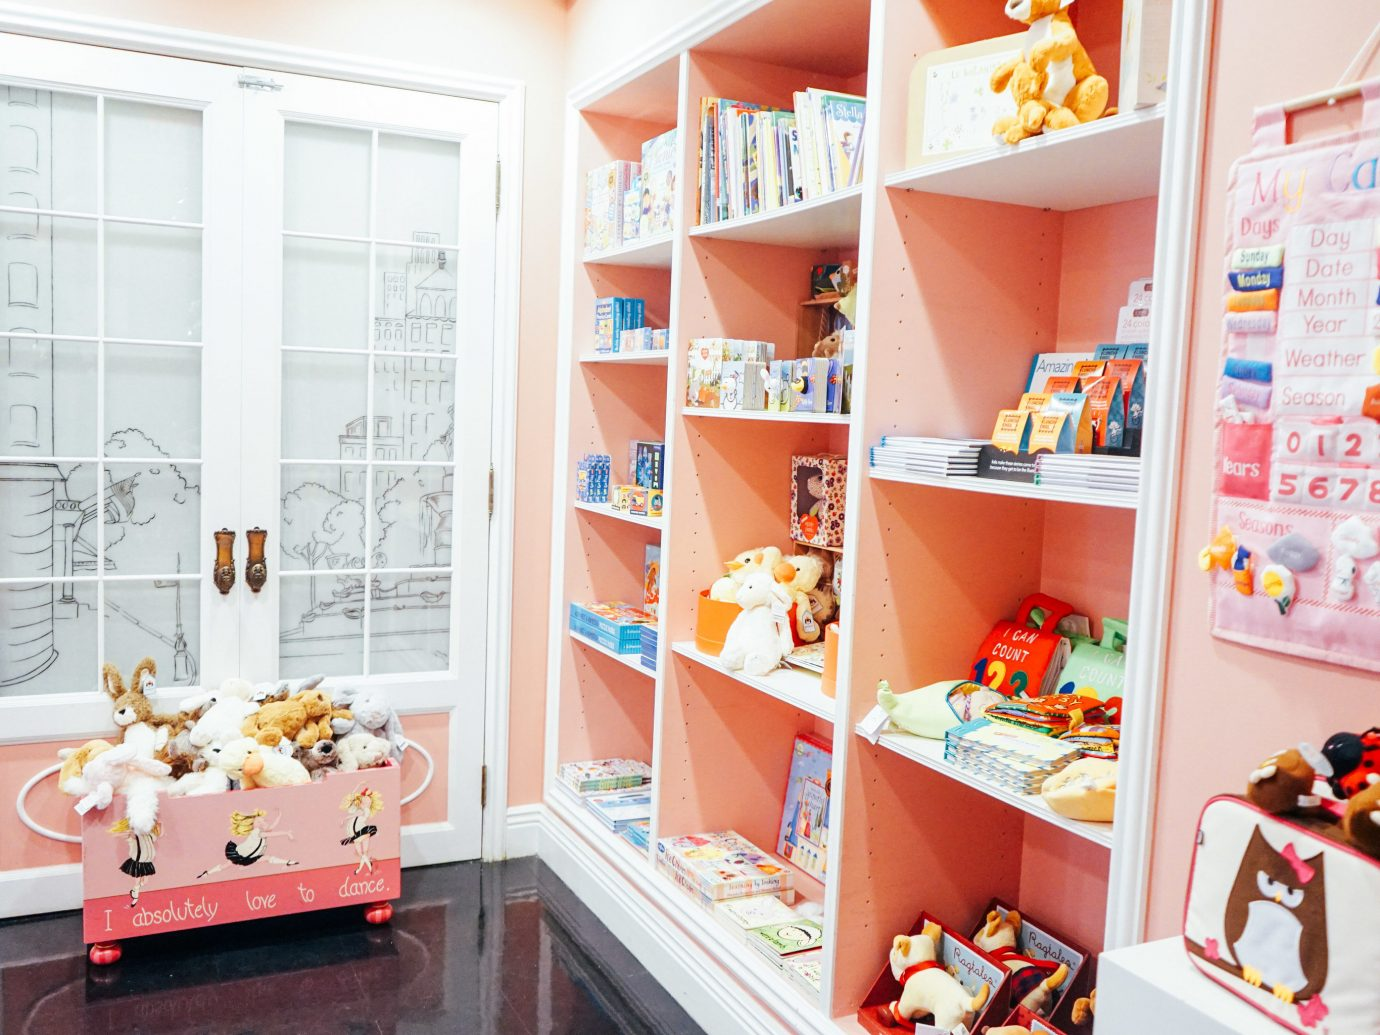 Hotels room indoor shelf toy interior design several